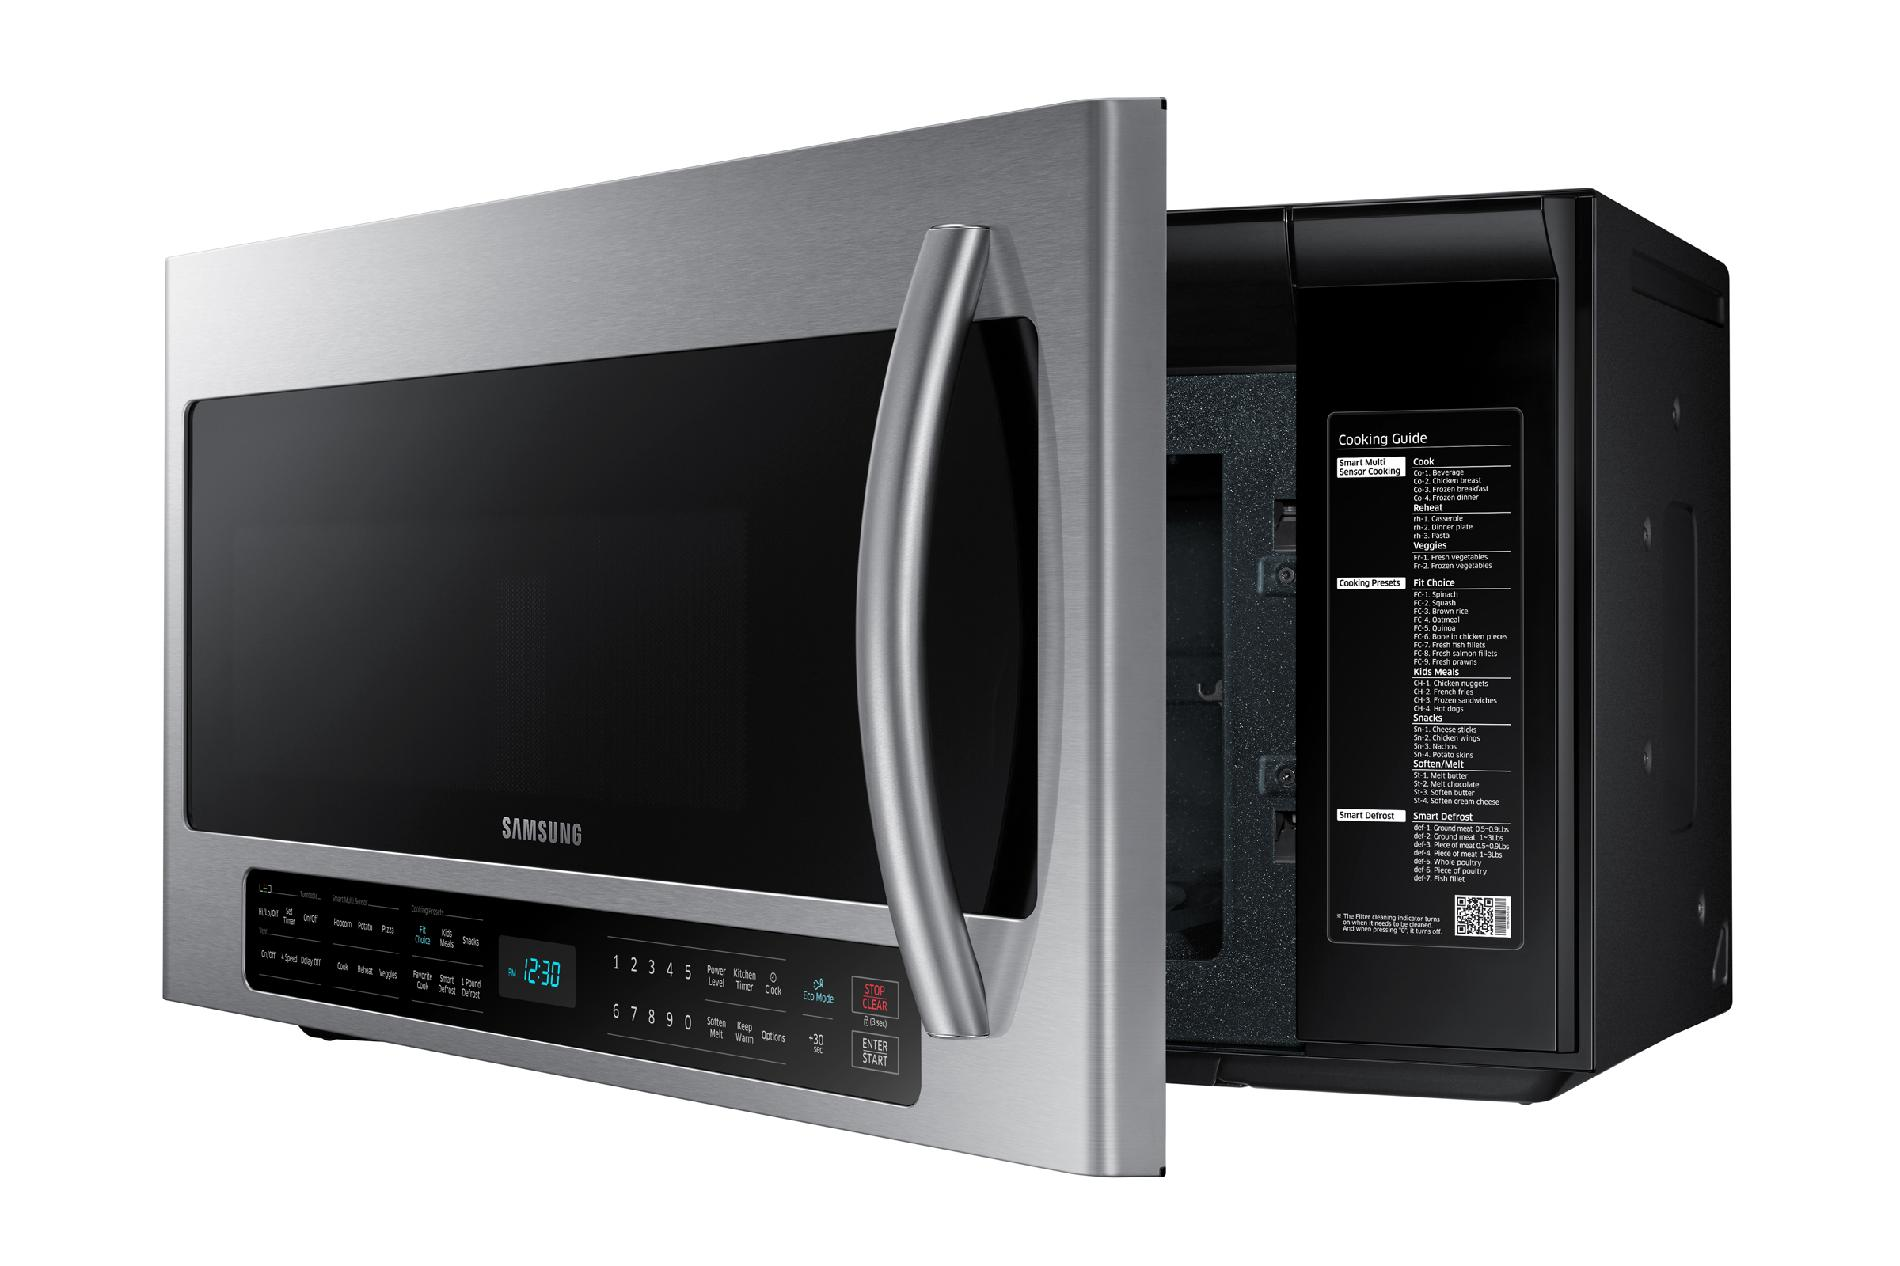 Samsung ME21H706MQS 2.1 cu. ft. Over-the-Range Microwave w/ Multi-Sensor Cooking - Stainless Steel